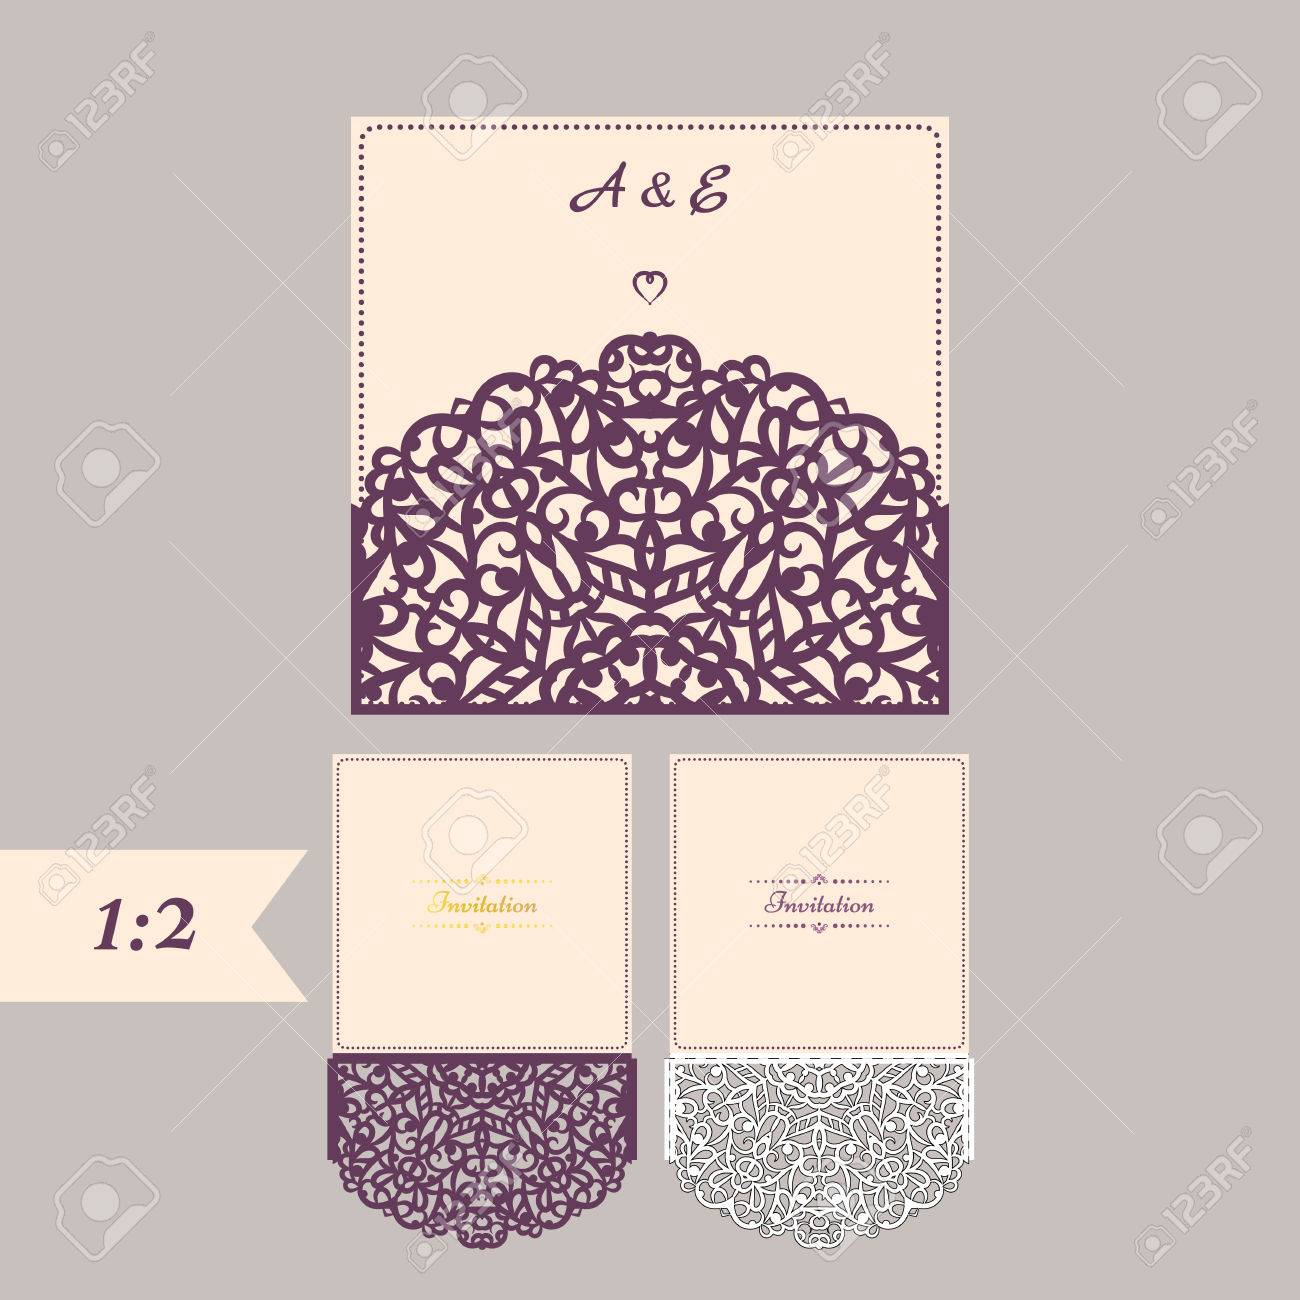 Abstract Wedding Cutout Invitation Template Suitable For Lasercutting Lazercut Vector